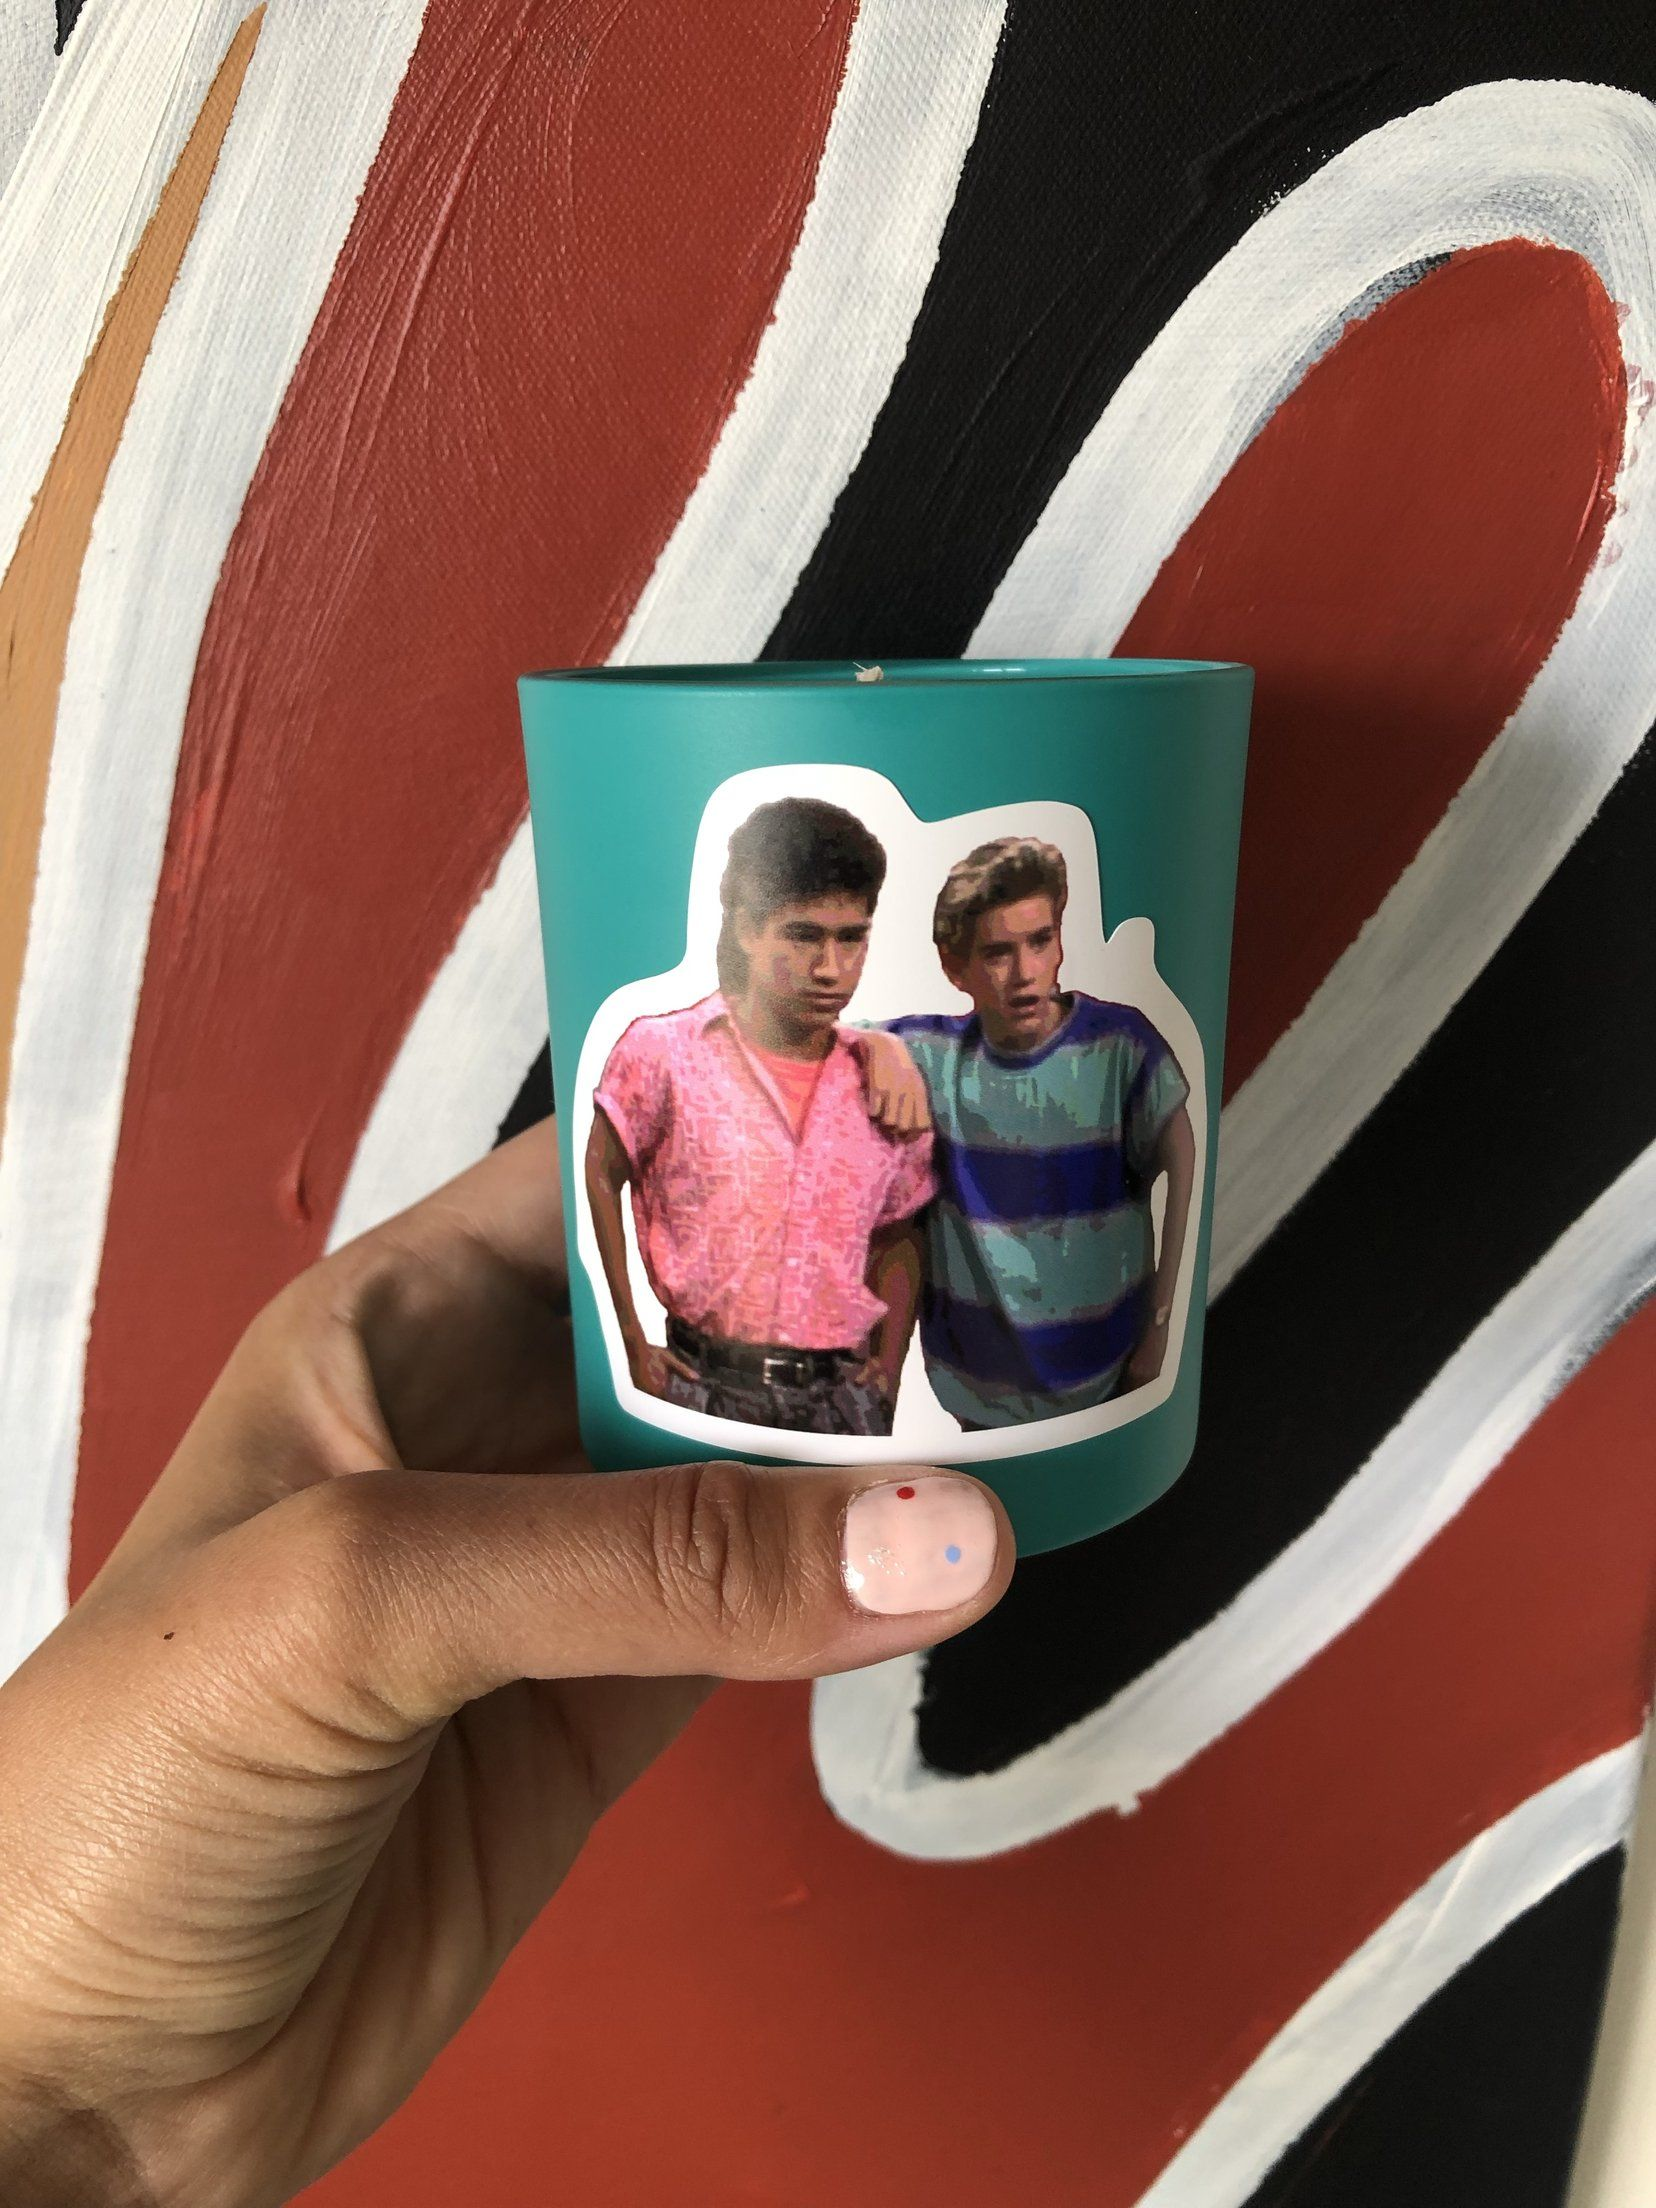 'Saved by the bell' Candle